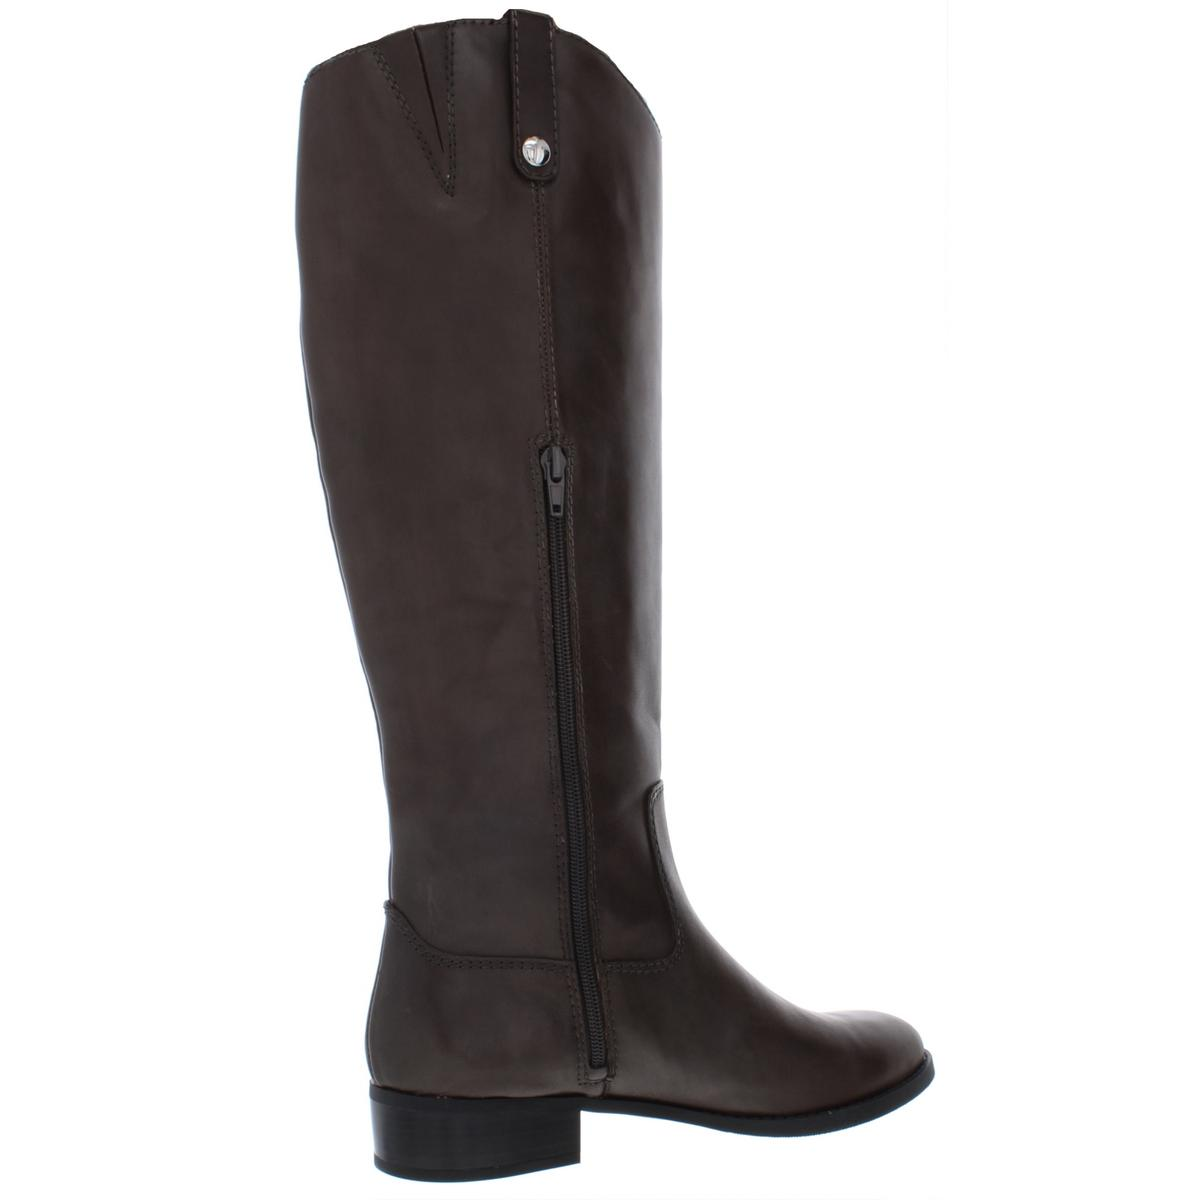 INC-Womens-Fawne-Leather-Knee-High-Tall-Riding-Boots-Shoes-BHFO-5020 thumbnail 12